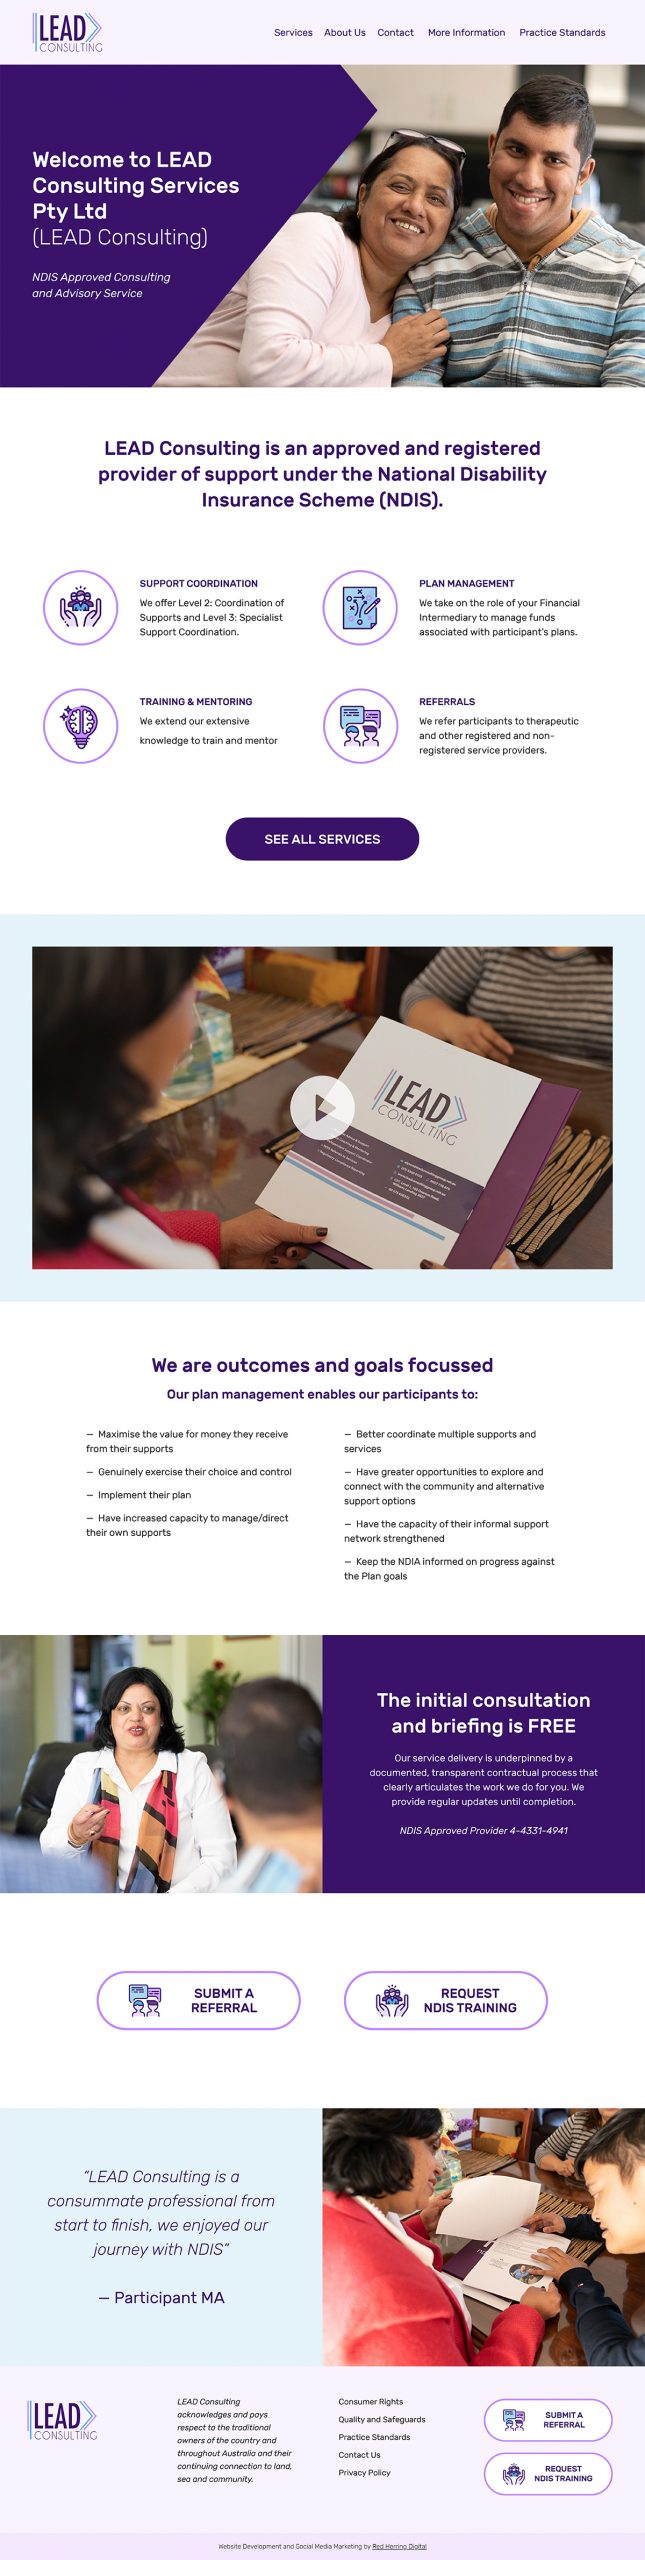 Lead Consulting